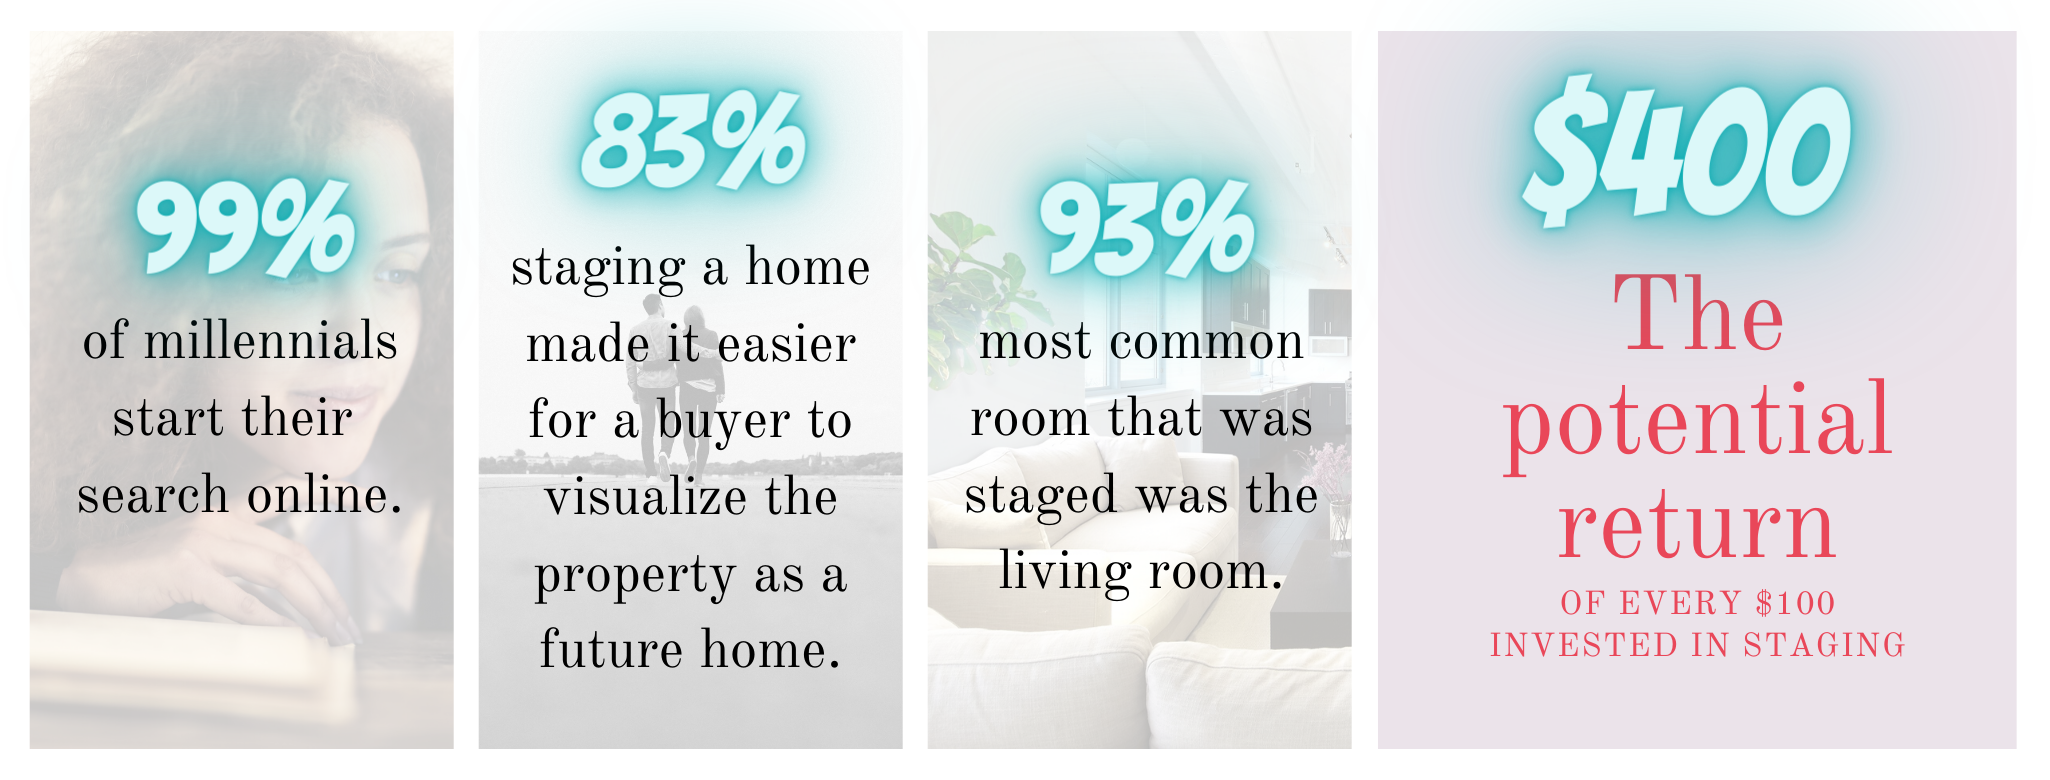 Statistics related to staging your home for resale